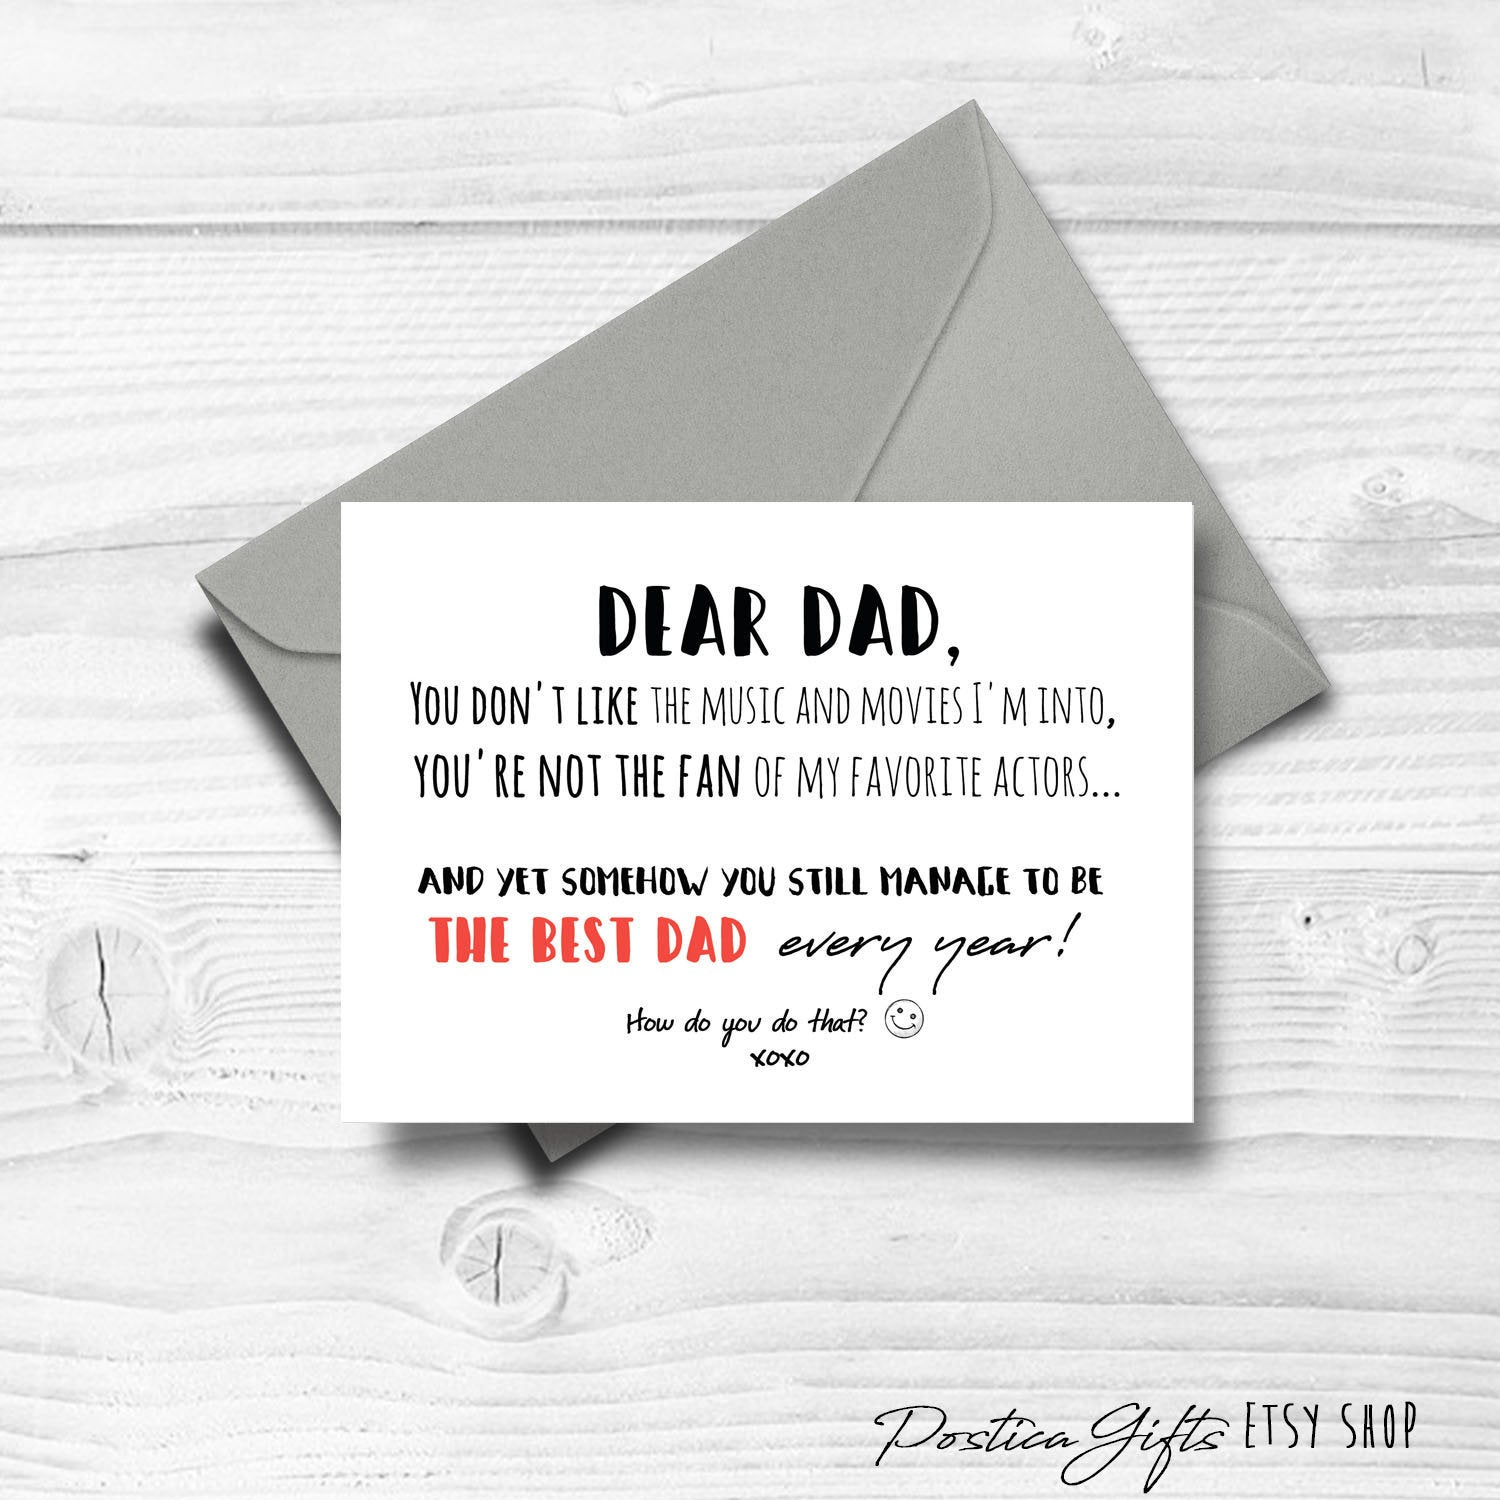 Card Ideas For Dads Birthday Father Birthday Card Thanks Dad Funny Birthday Card Gifts For Dad Father Gift Idea Congratulations Printable Digital Download 30th 40th 50th